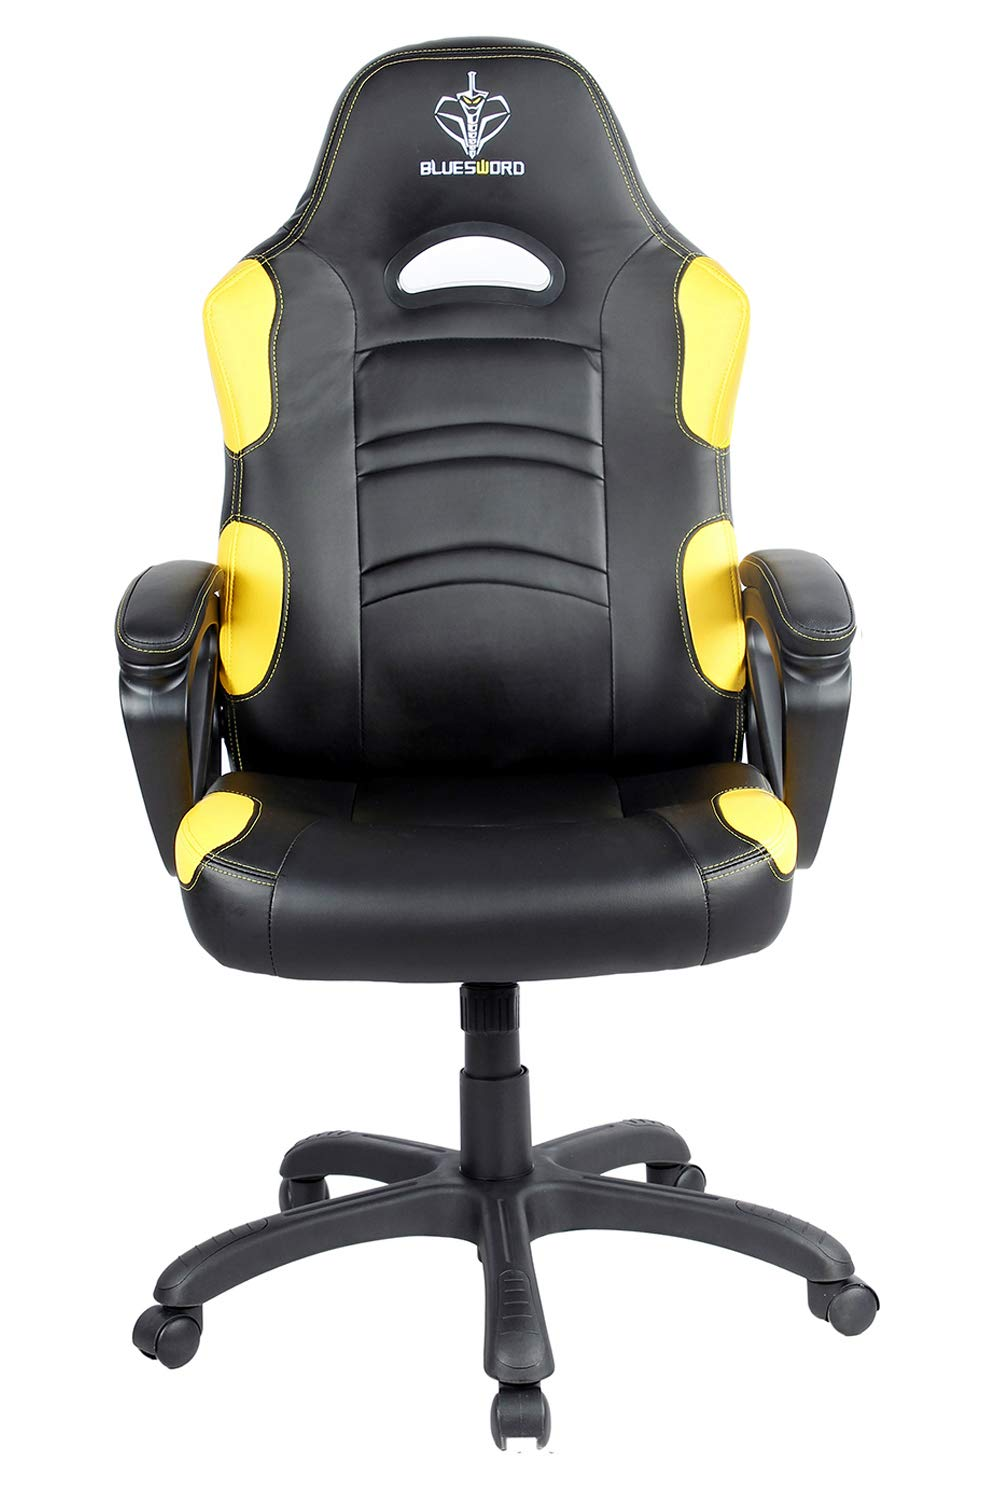 BLUE SWORD Gaming Chair, Racing Car Style Gaming Chair with Large Bucket Seat, Computer Chair with Tilting and Swivel Function, Leatherette, Yellow by BLUE SWORD